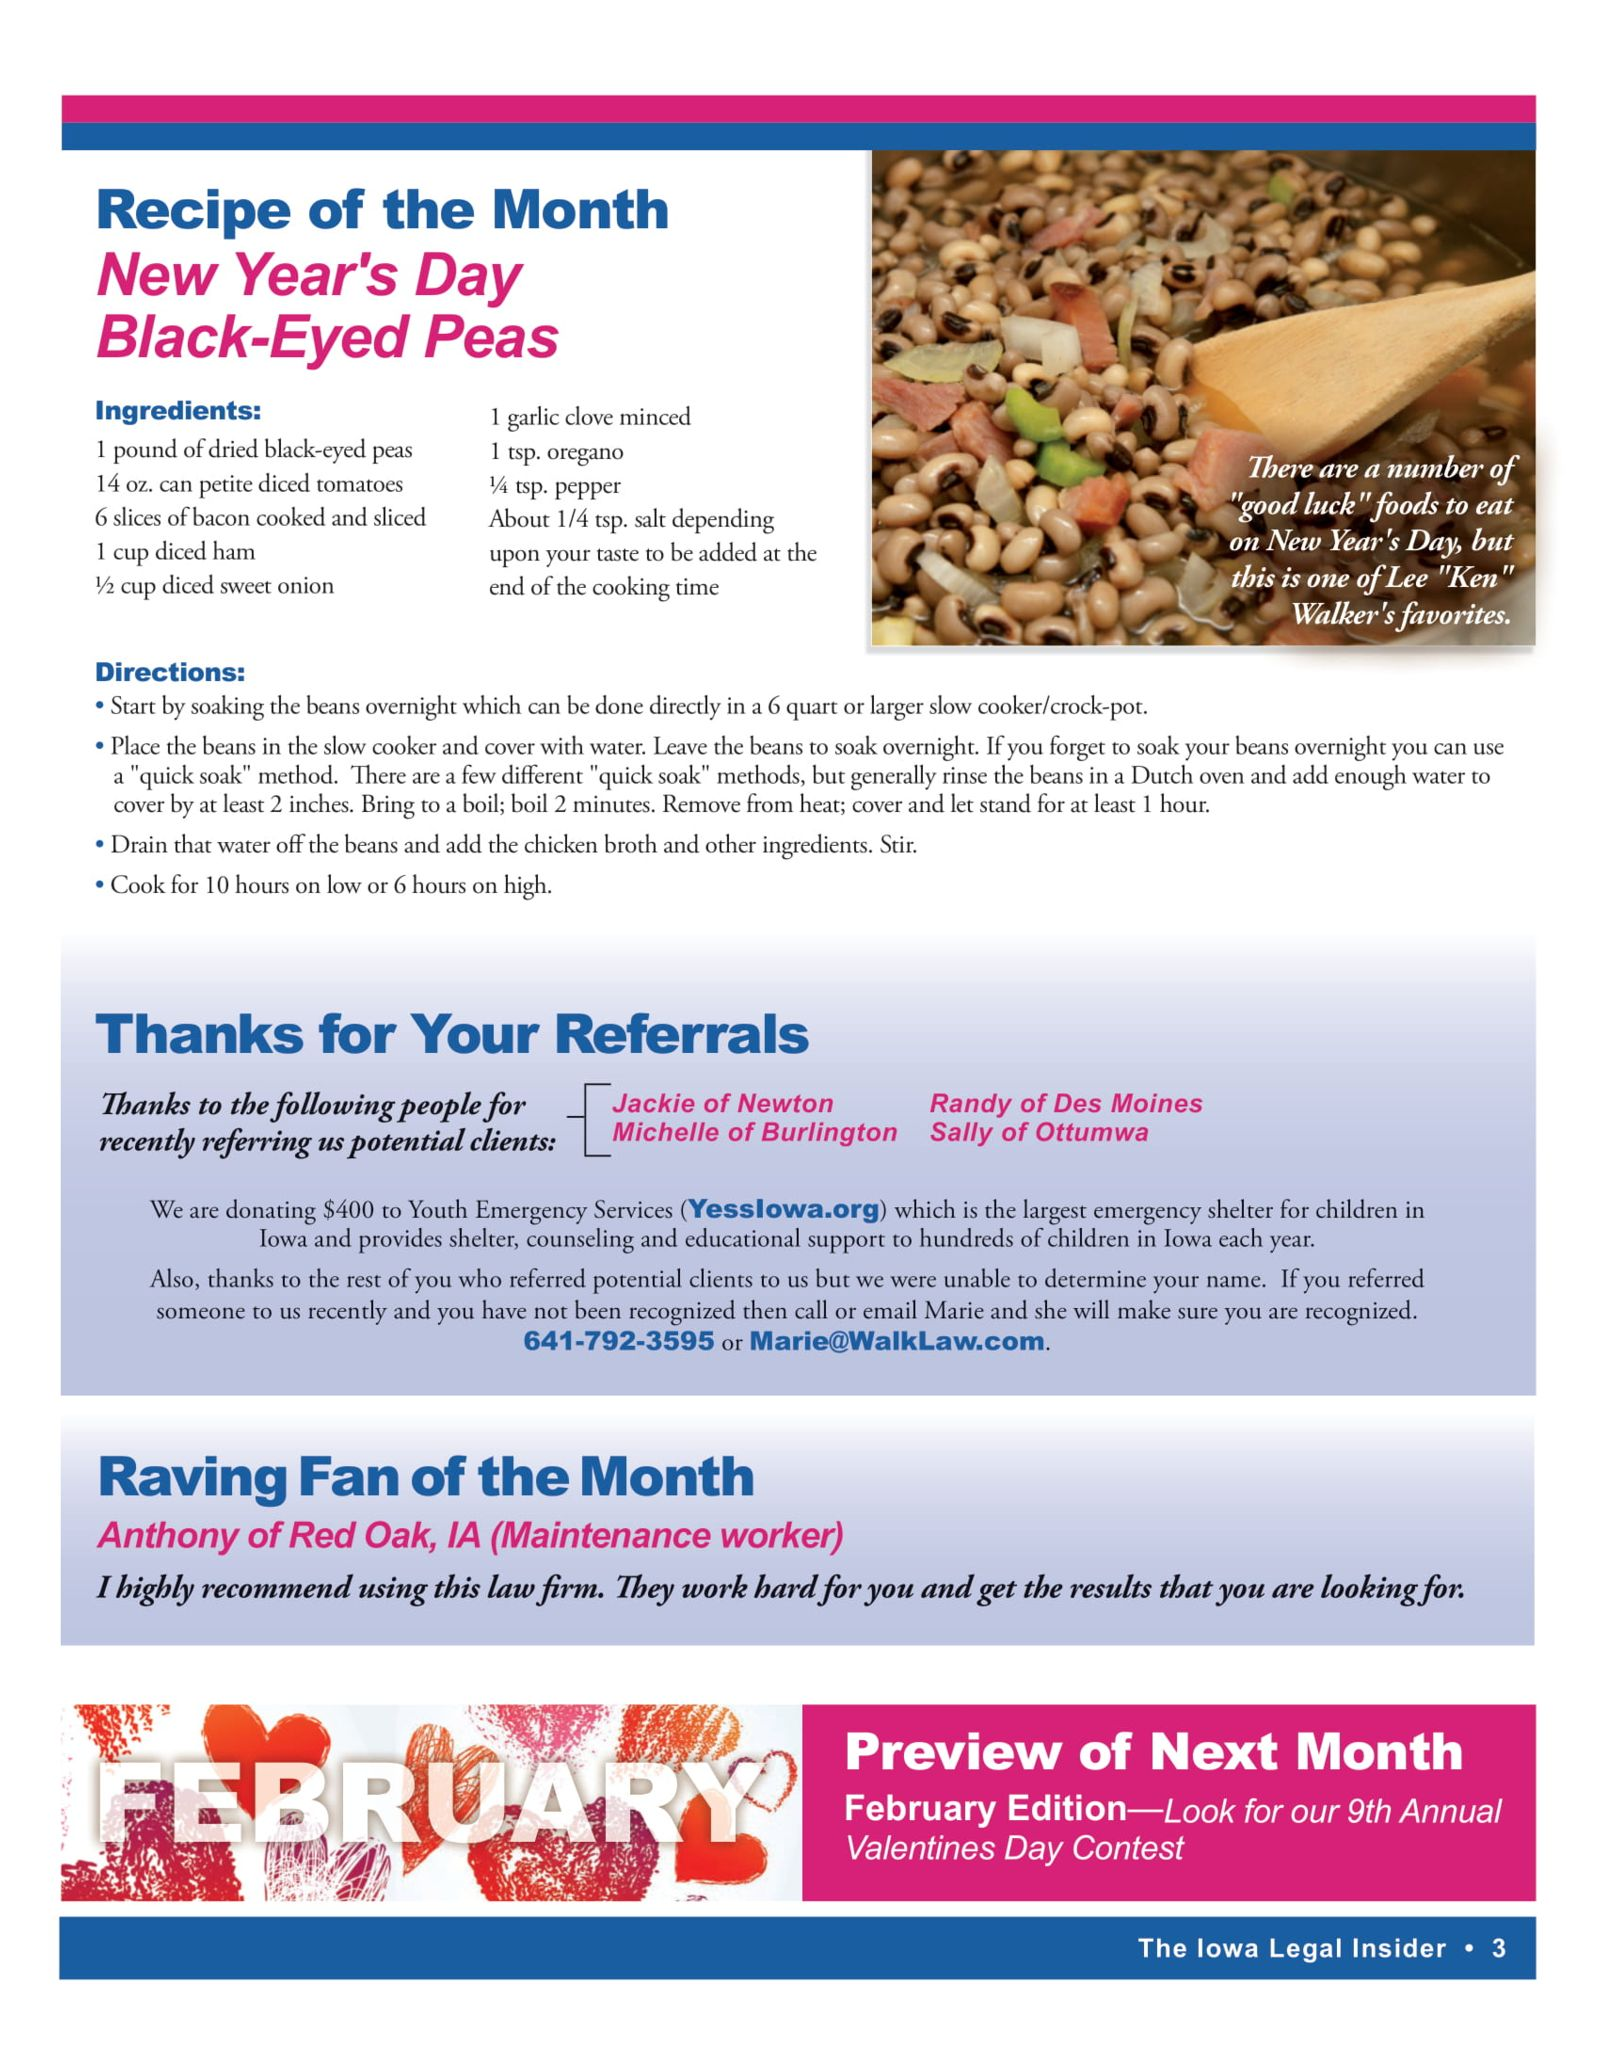 Recipe of the month New Year's Day Black Eyed Peas Iowa legal Insider